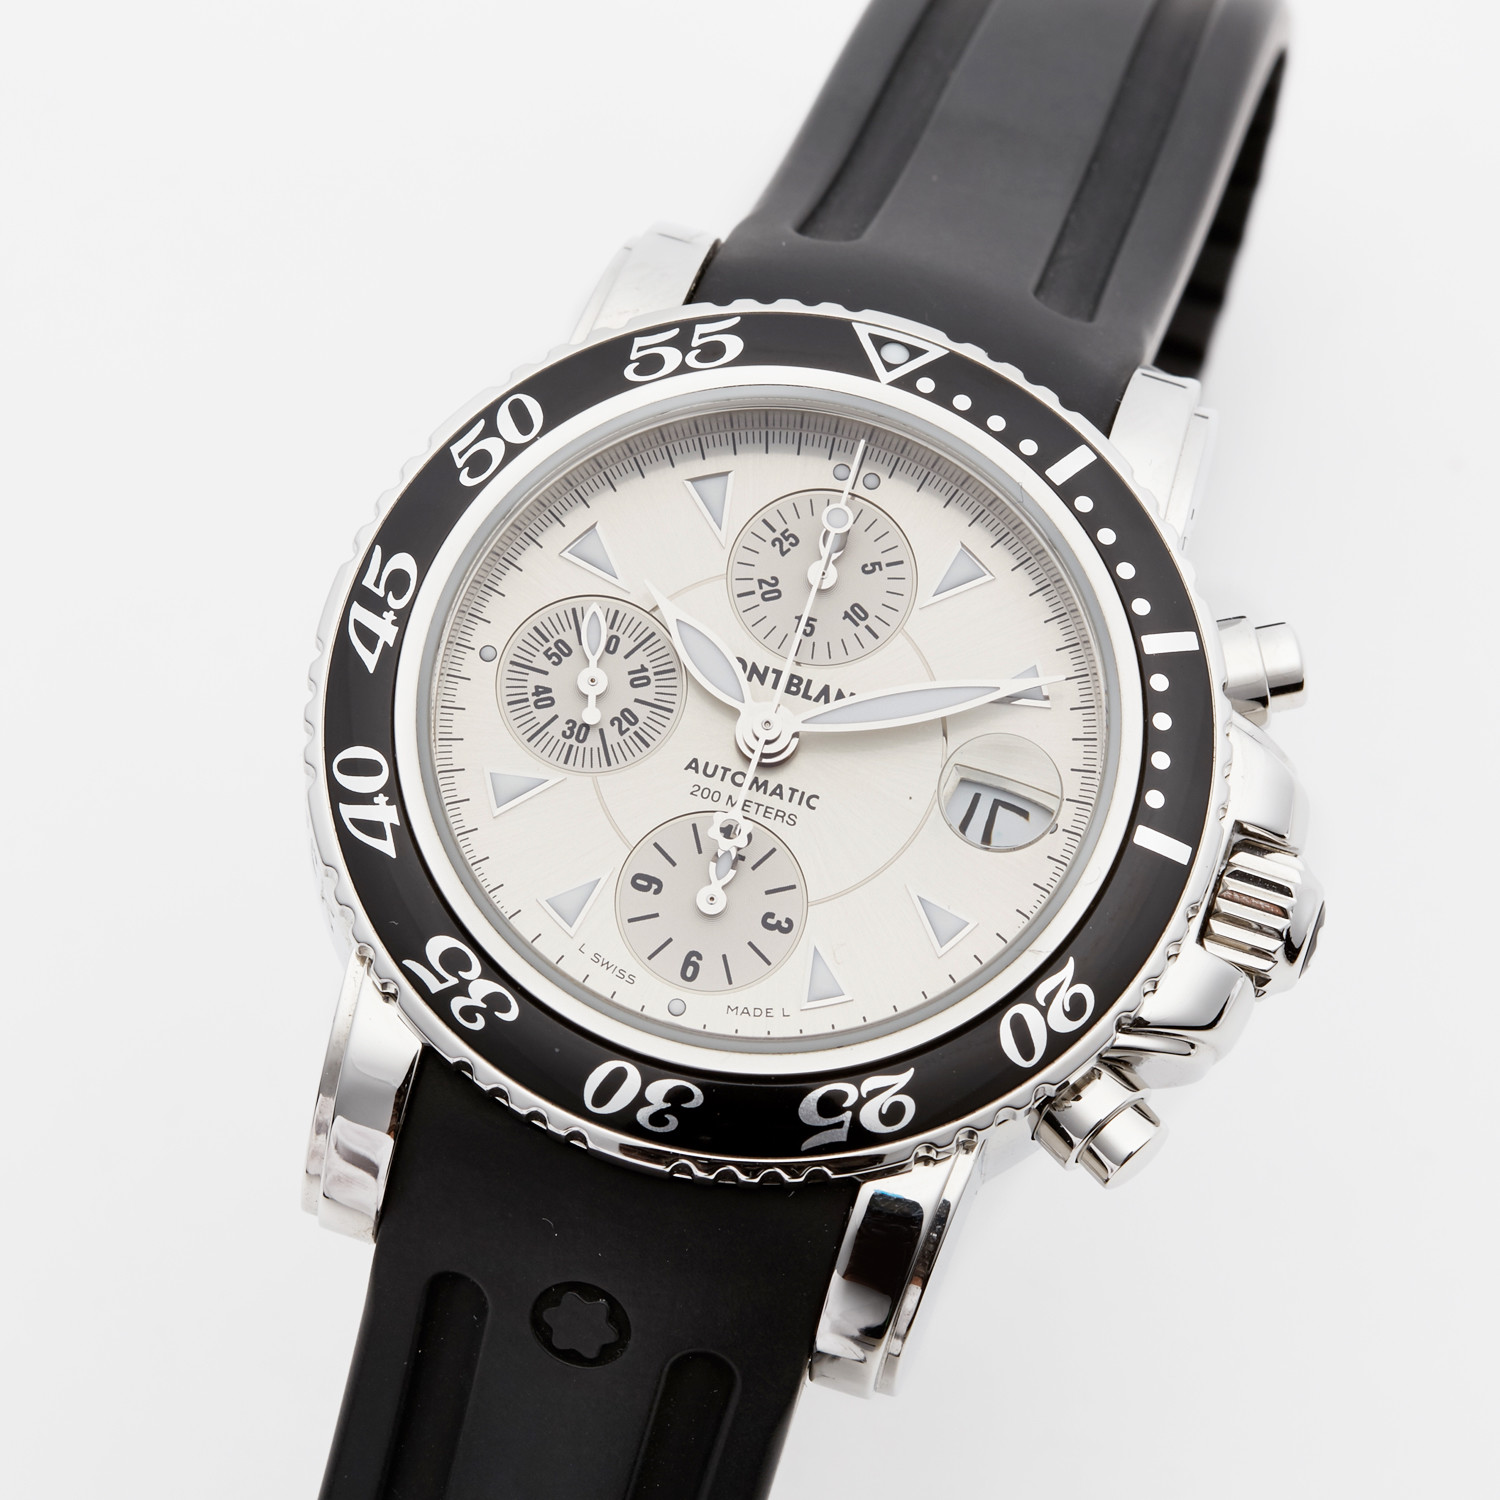 c9cd5a34958ef Montblanc Sport Chronograph Automatic // 7034 // Store Display ...